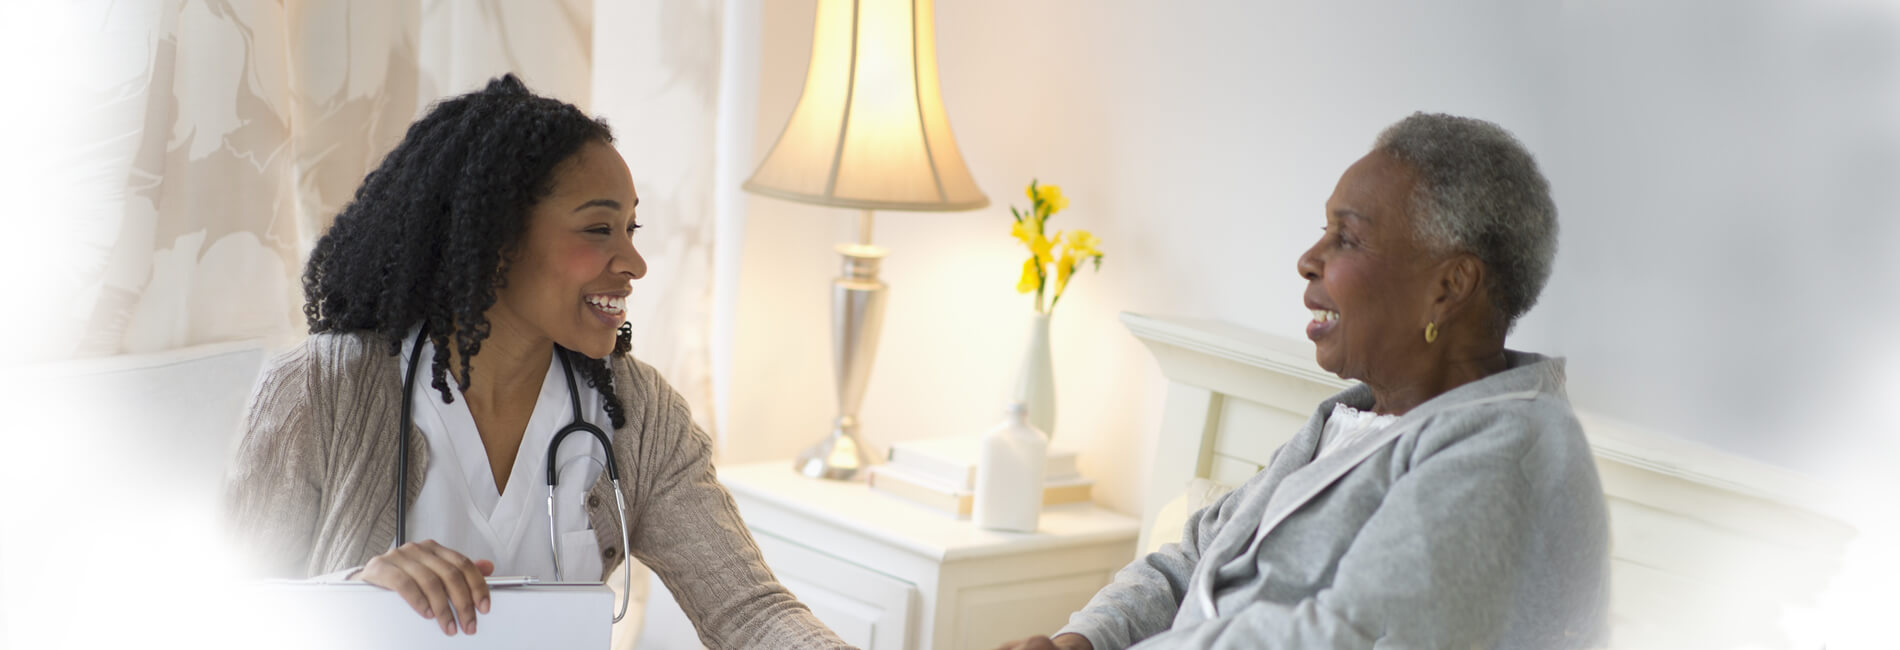 A Home Health registered nurse speaking with an elderly client in her bedroom.